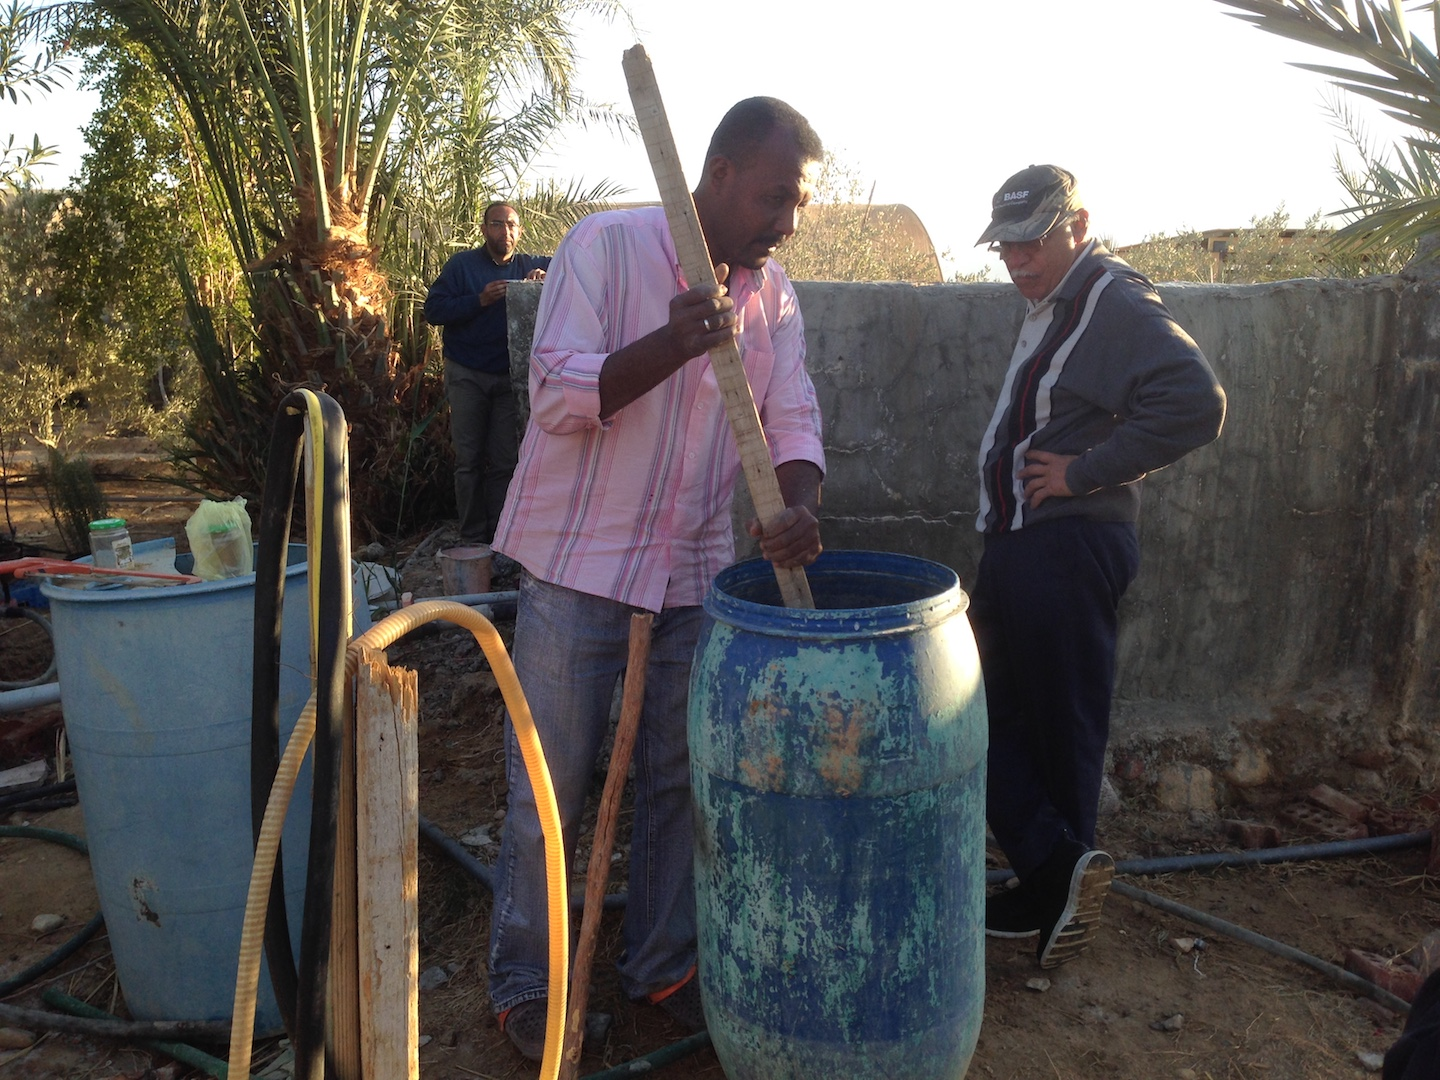 Dr. Soliman overviewing the mixing of sulfer with fertilizer to add to the soil